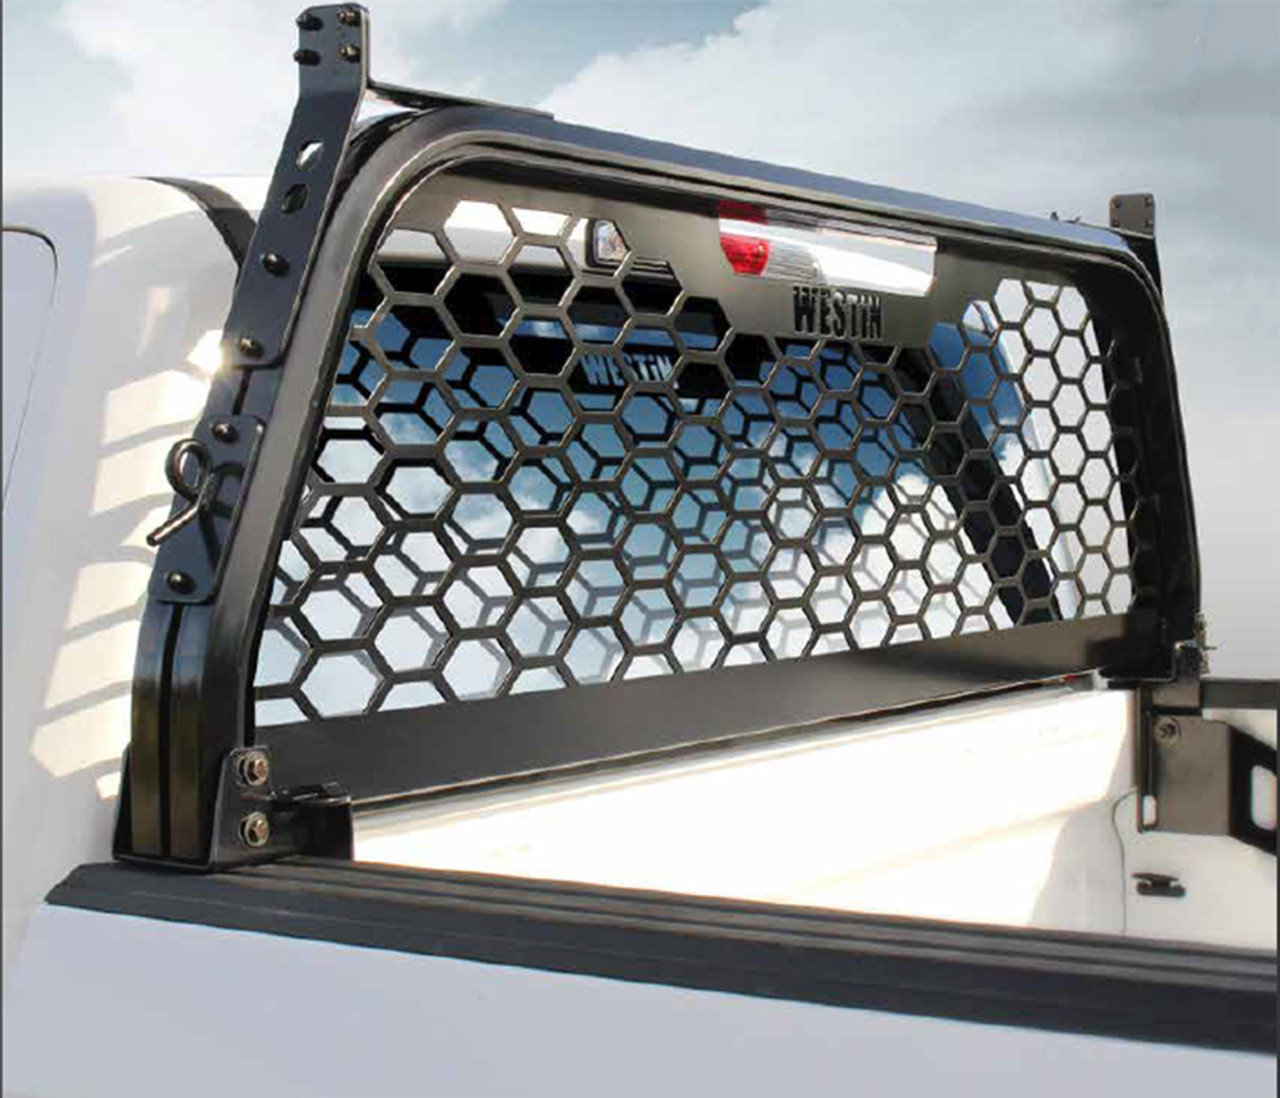 Adjustable Headache Rack Made From Heavy Duty Steel For Protect Your Rear Window